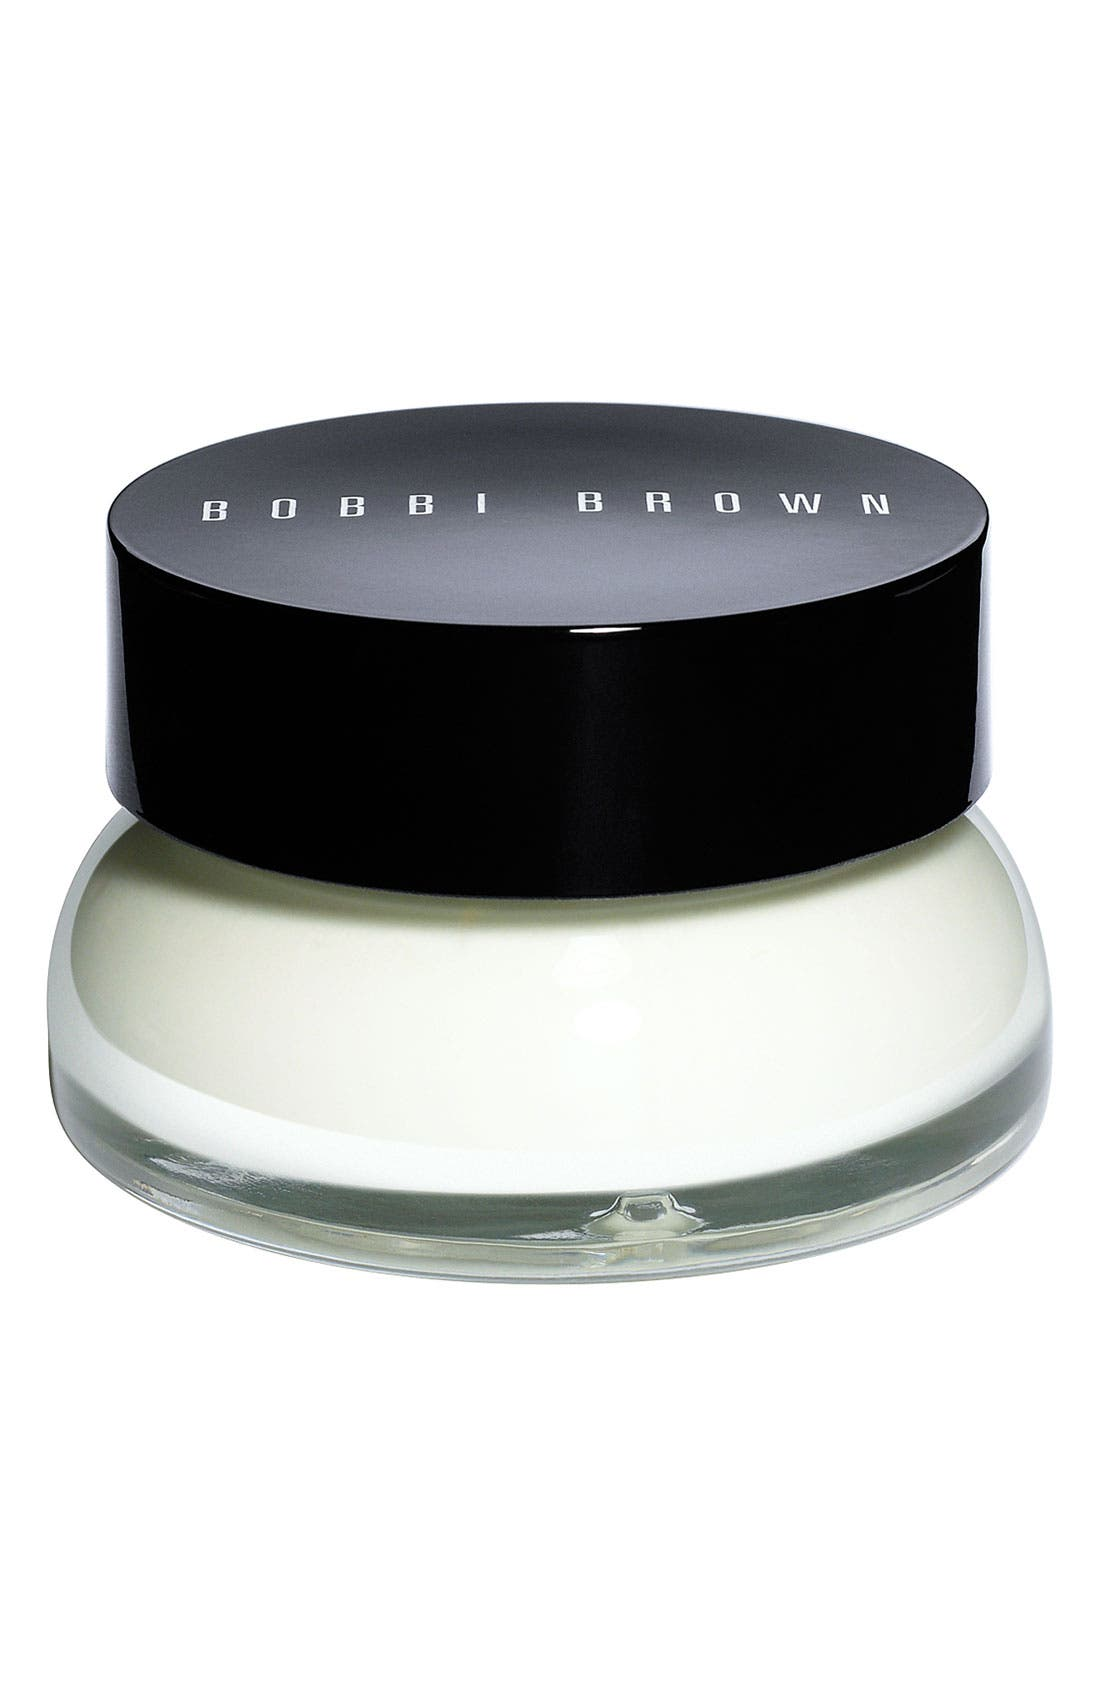 BOBBI BROWN, Extra Repair Moisturizing Balm SPF 25, Main thumbnail 1, color, NO COLOR